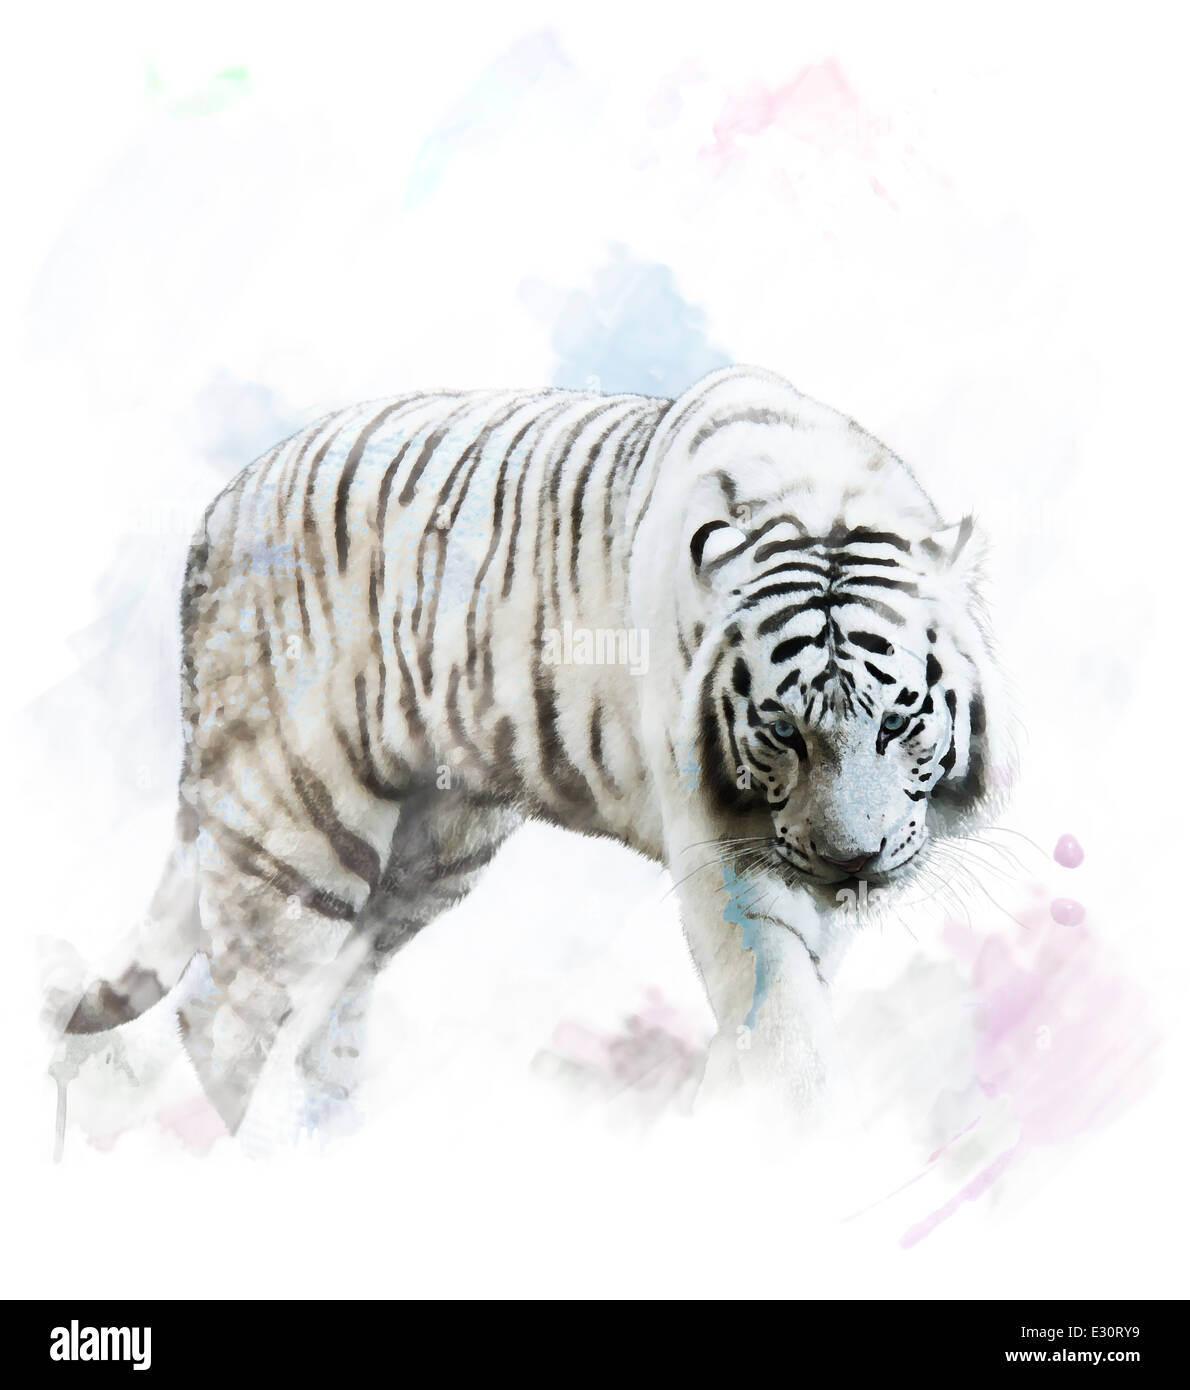 Aquarelle peinture digitale de tigre blanc Portrait Photo Stock